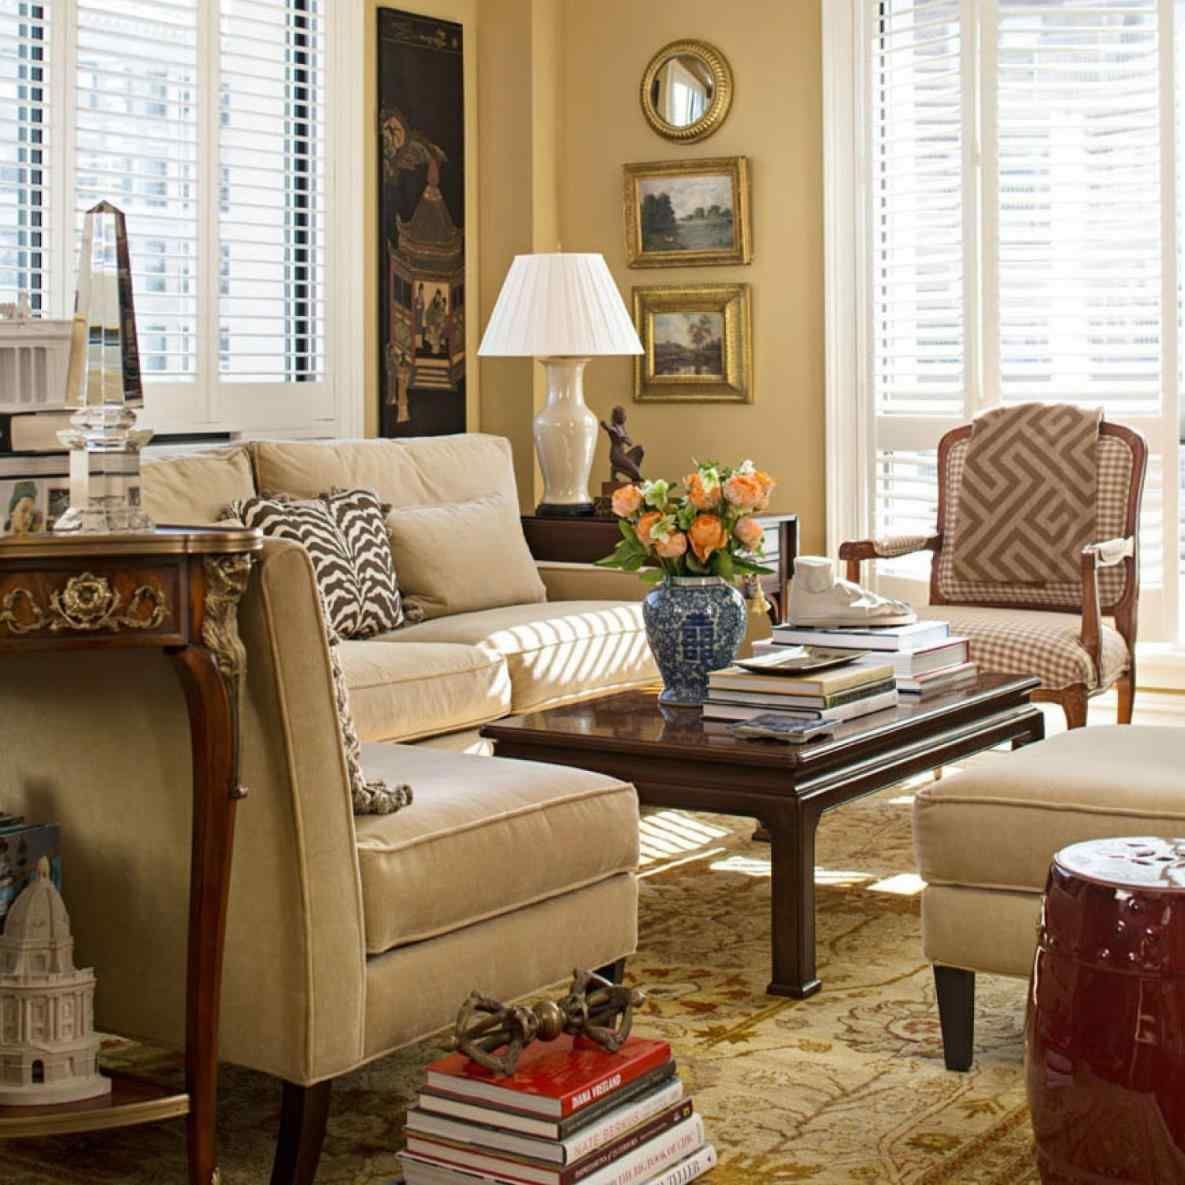 Beau Ballard Designs Sectional Sofa Set Rich Comfortable Upholstered Fabric How  To Match A Coffee Table Your